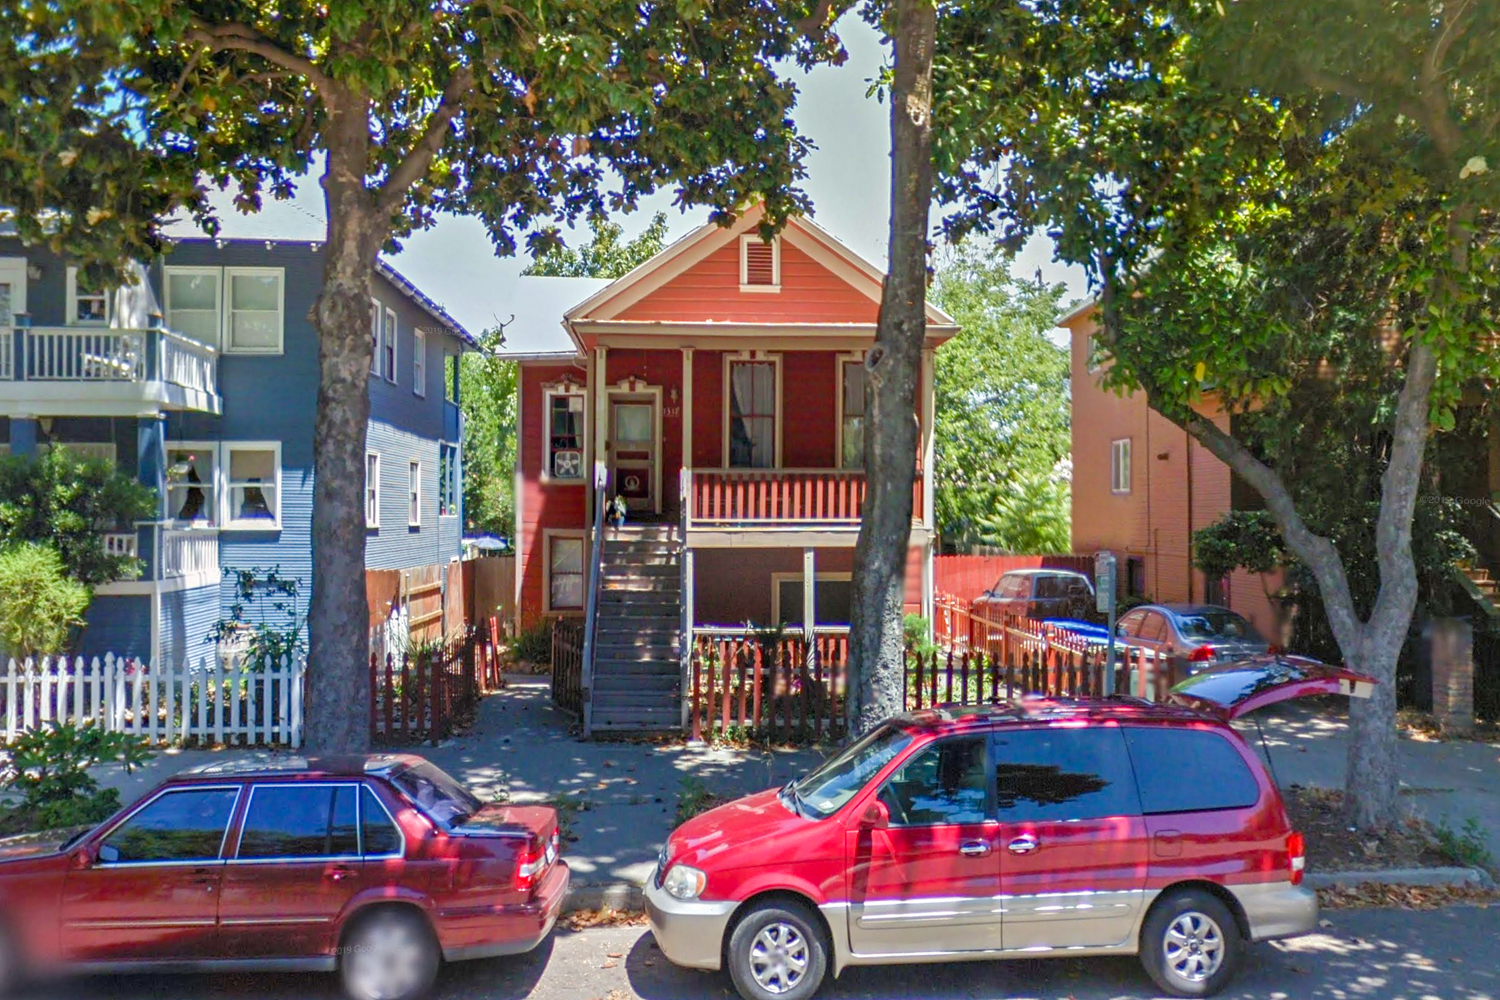 1317 D Street, via Google Maps